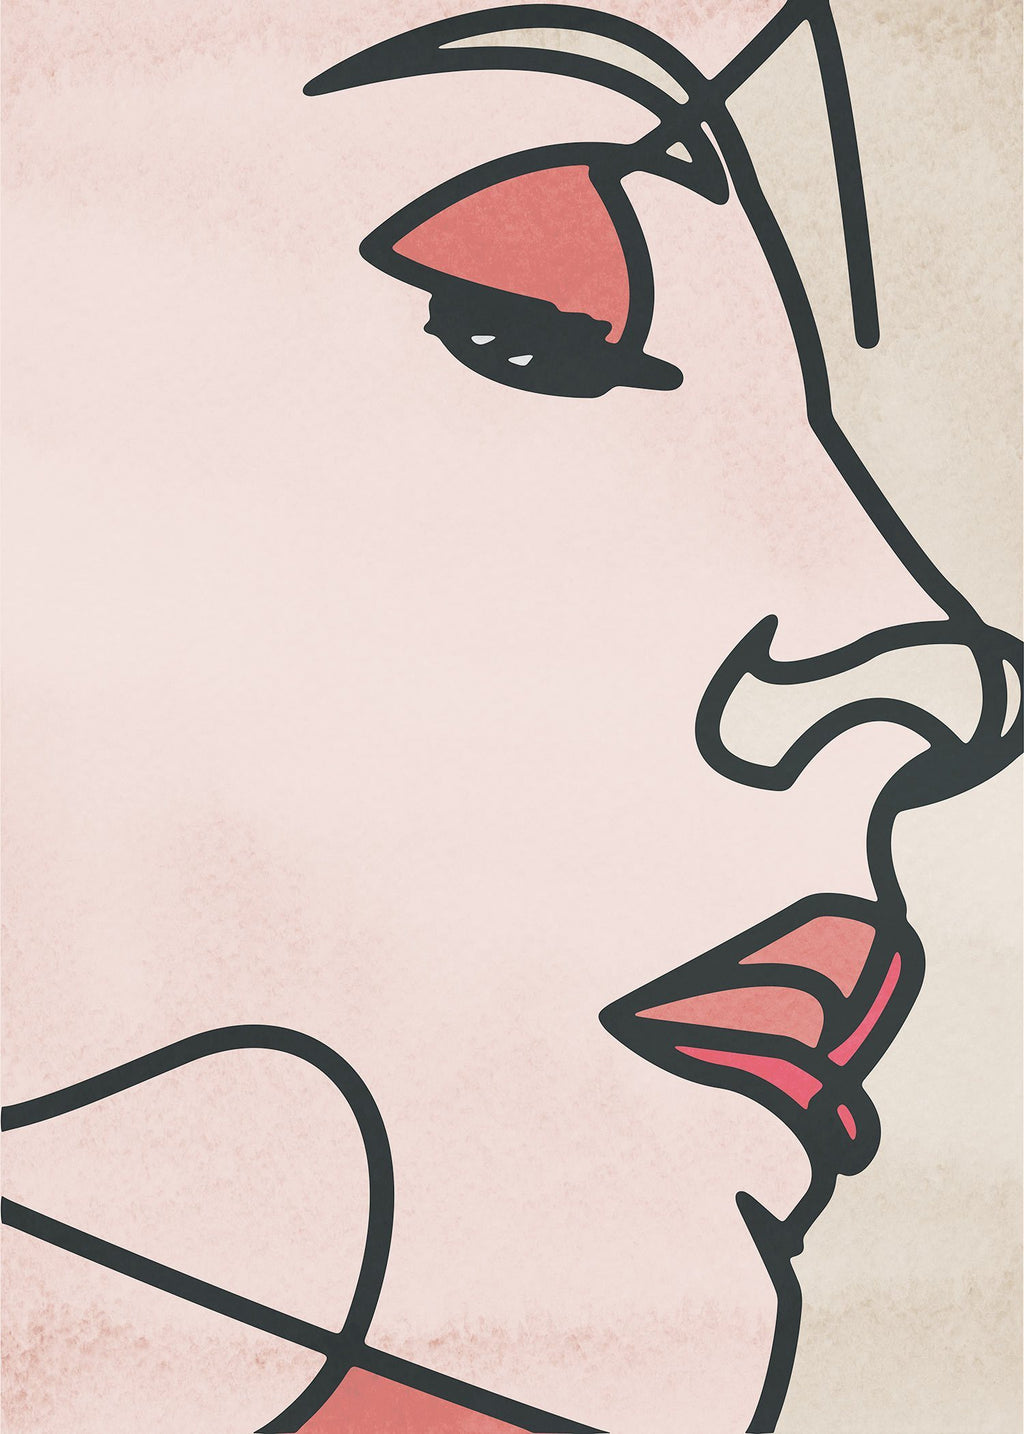 Face Close Up Line Art Watercolour Print